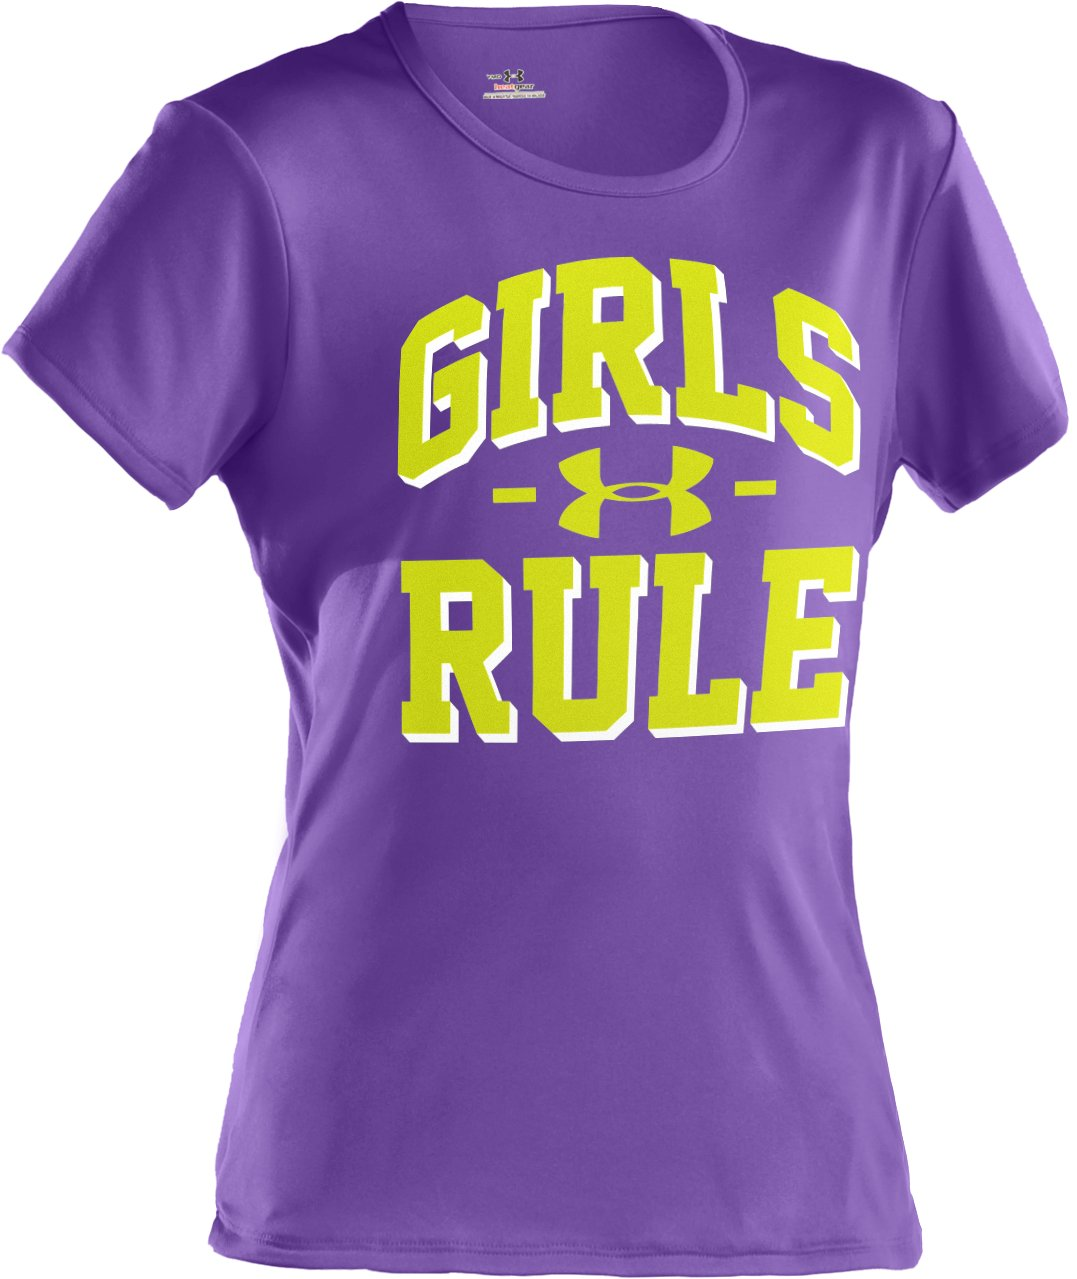 UA Girls Rule Graphic T-Shirt, LAVISH